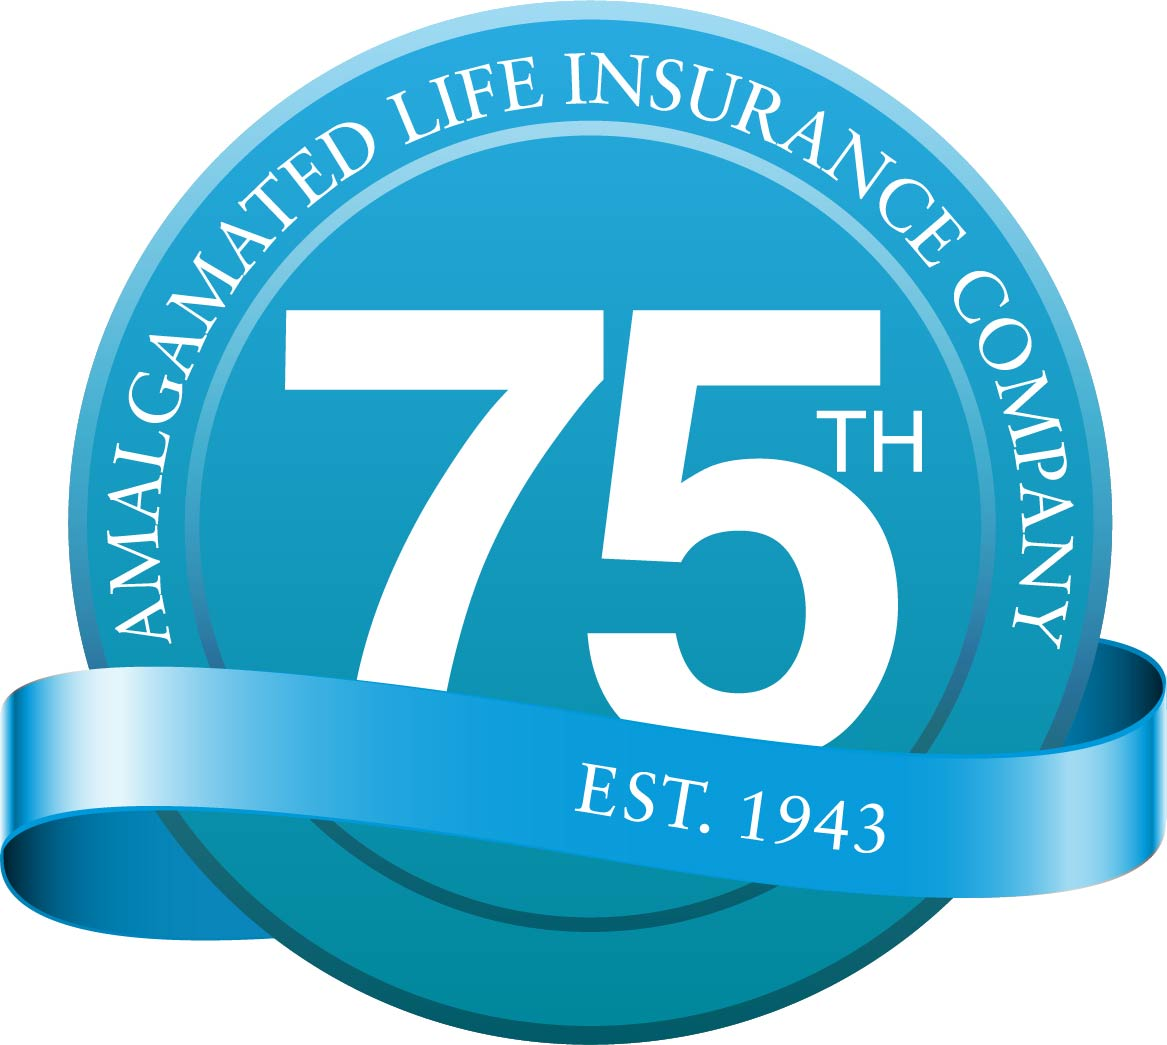 Amalgamated Life Life  Accident  Disability. Computer Forensic Scientist Ing Bank Online. Graphic Design Websites Templates. Orange County Accident Attorney. Mit Systems Engineering Private Colleges In Ny. What Is Support Software Auto Dialers Software. Abbreviation For Square Plumbers In Nashua Nh. Find Your Credit Score Trileptal Side Effects. Android Location Based Reminders